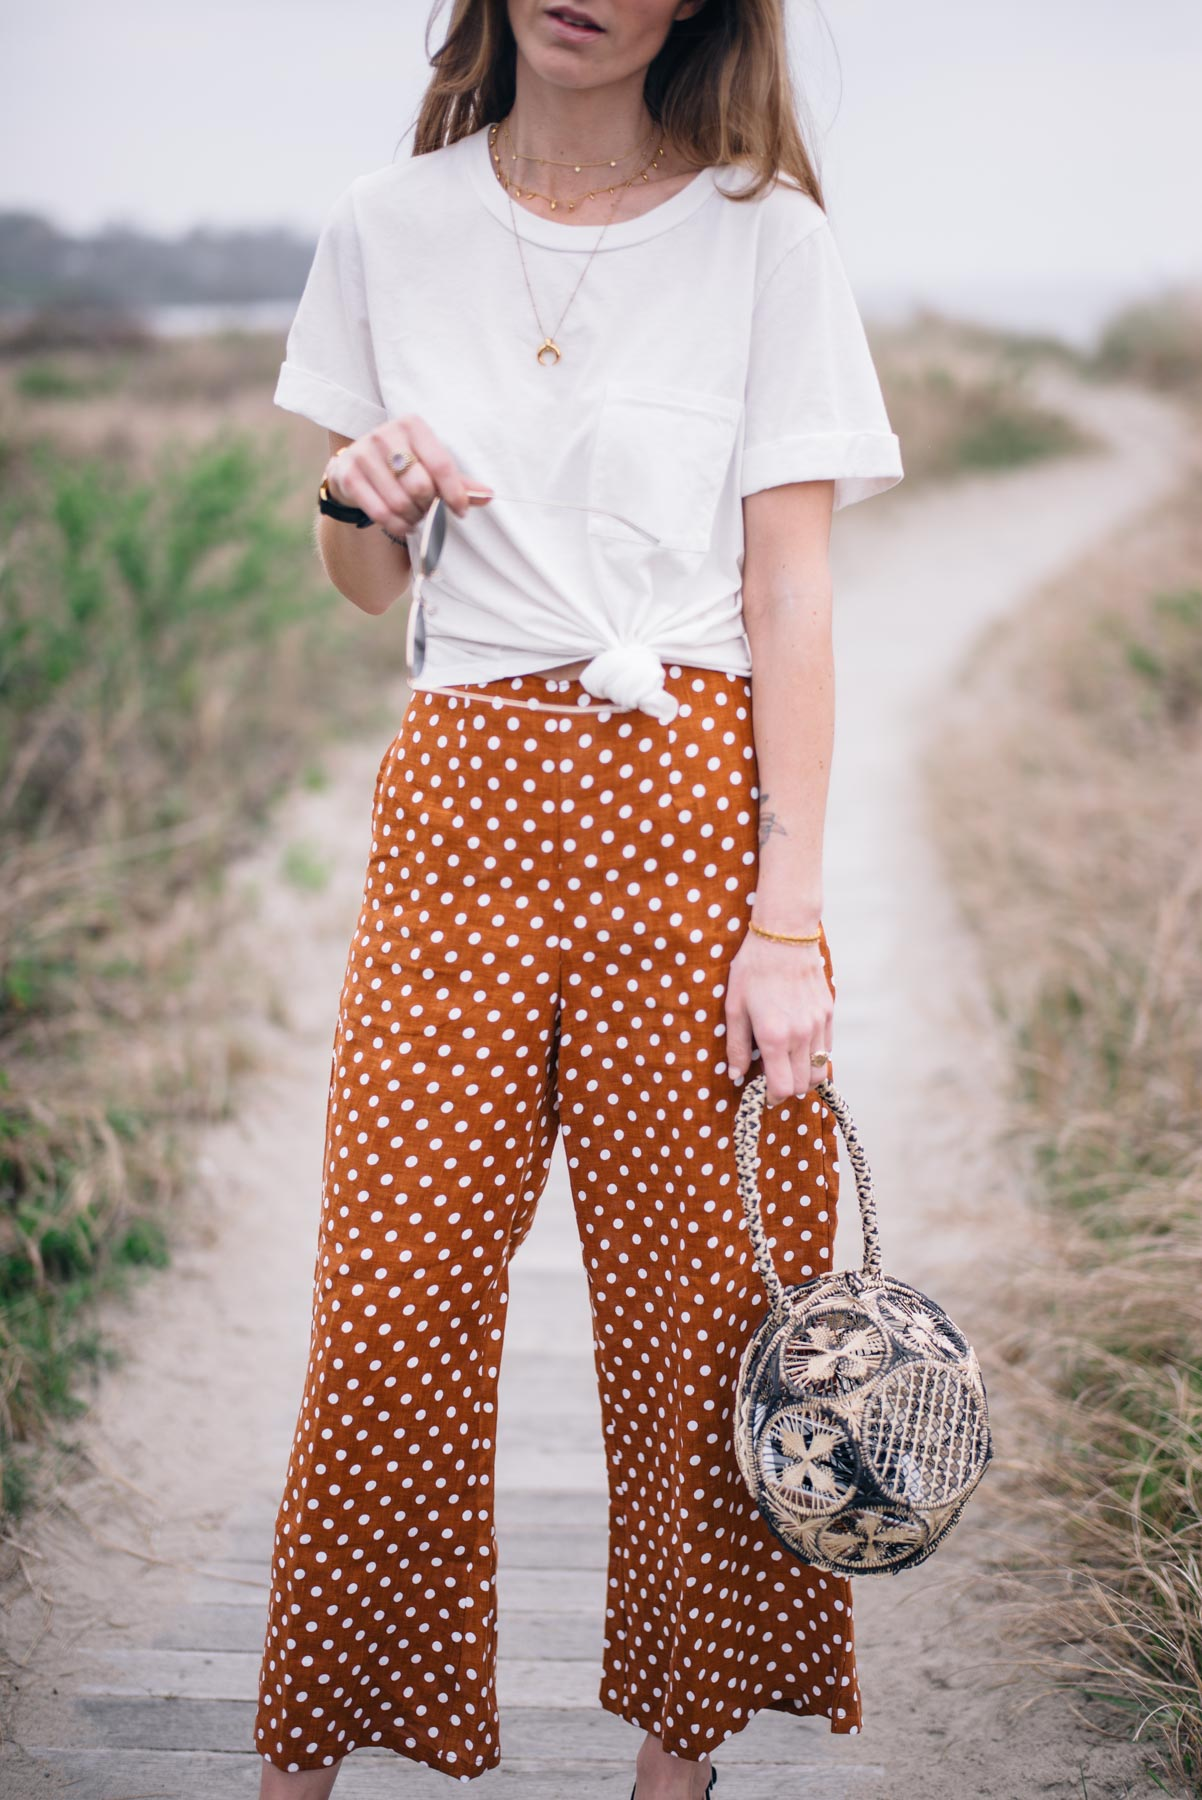 Jess Ann Kirby styles a boyfriend tee with Faithfull wide leg polka dot pants from Anthropologie